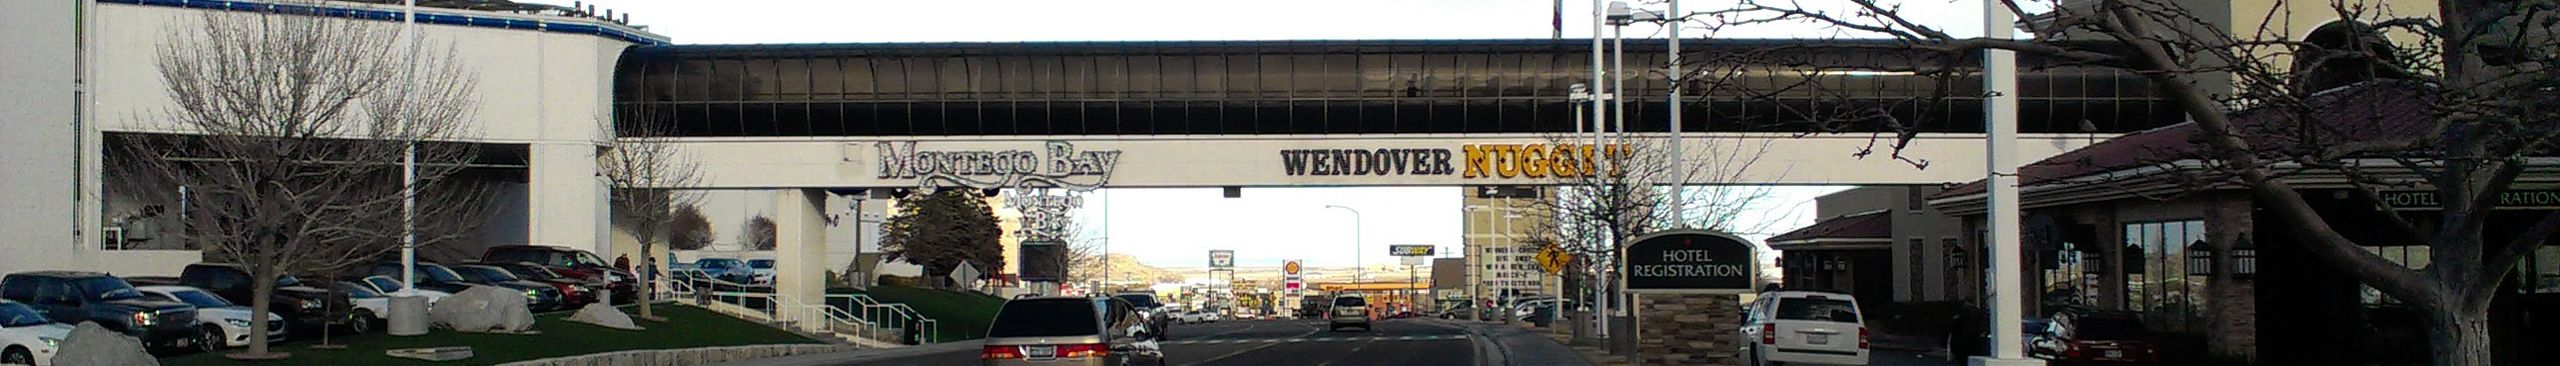 Wendover nevada hotels and casino star casino 100 biscayne blvd